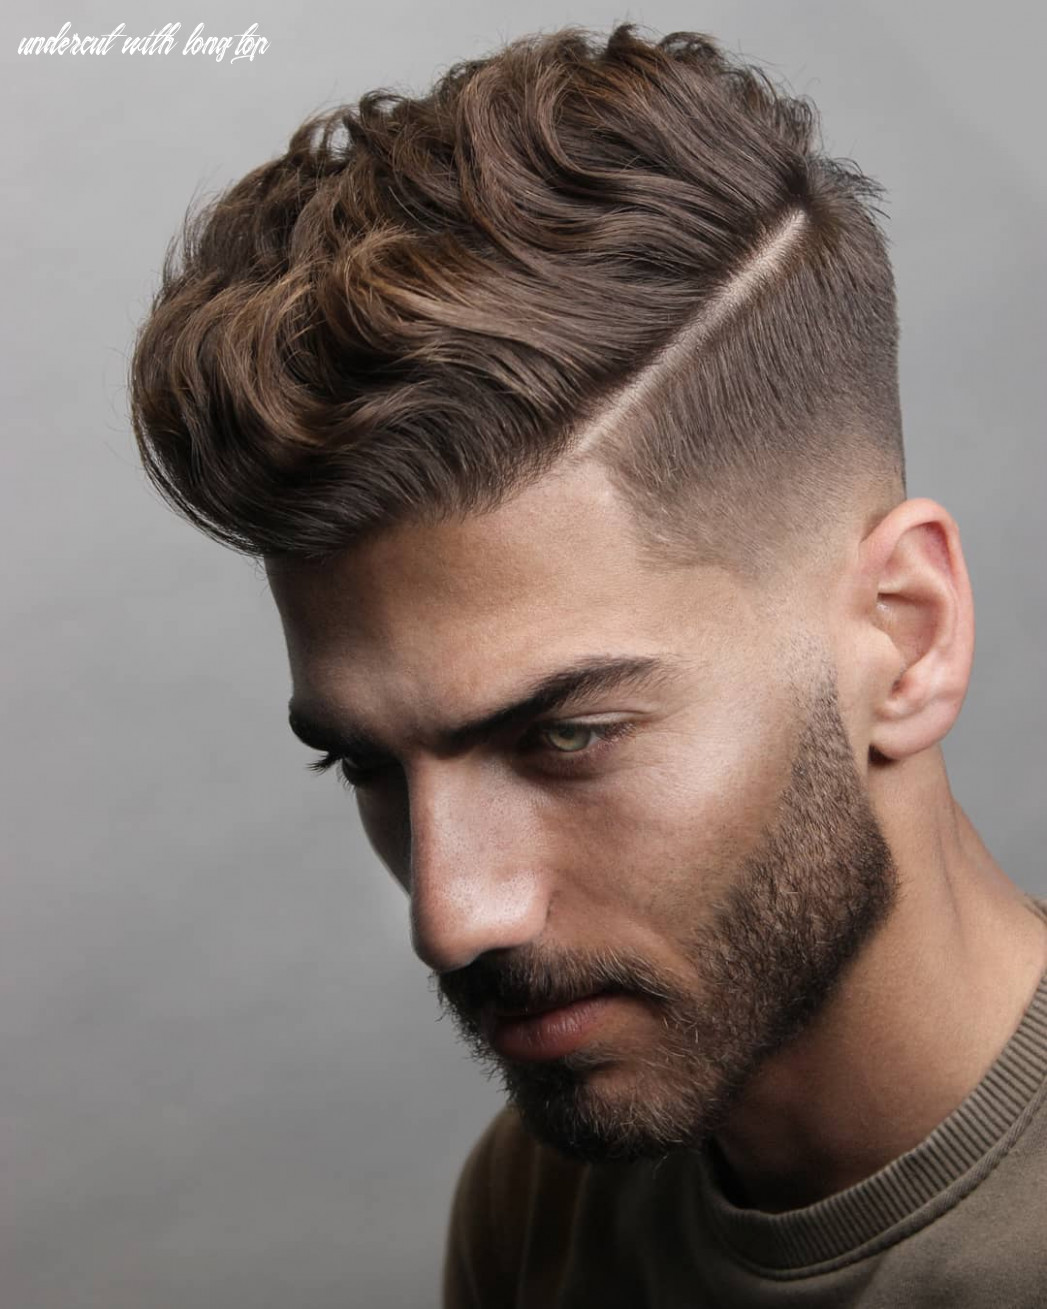 8 short on sides long on top haircuts for men | man haircuts undercut with long top